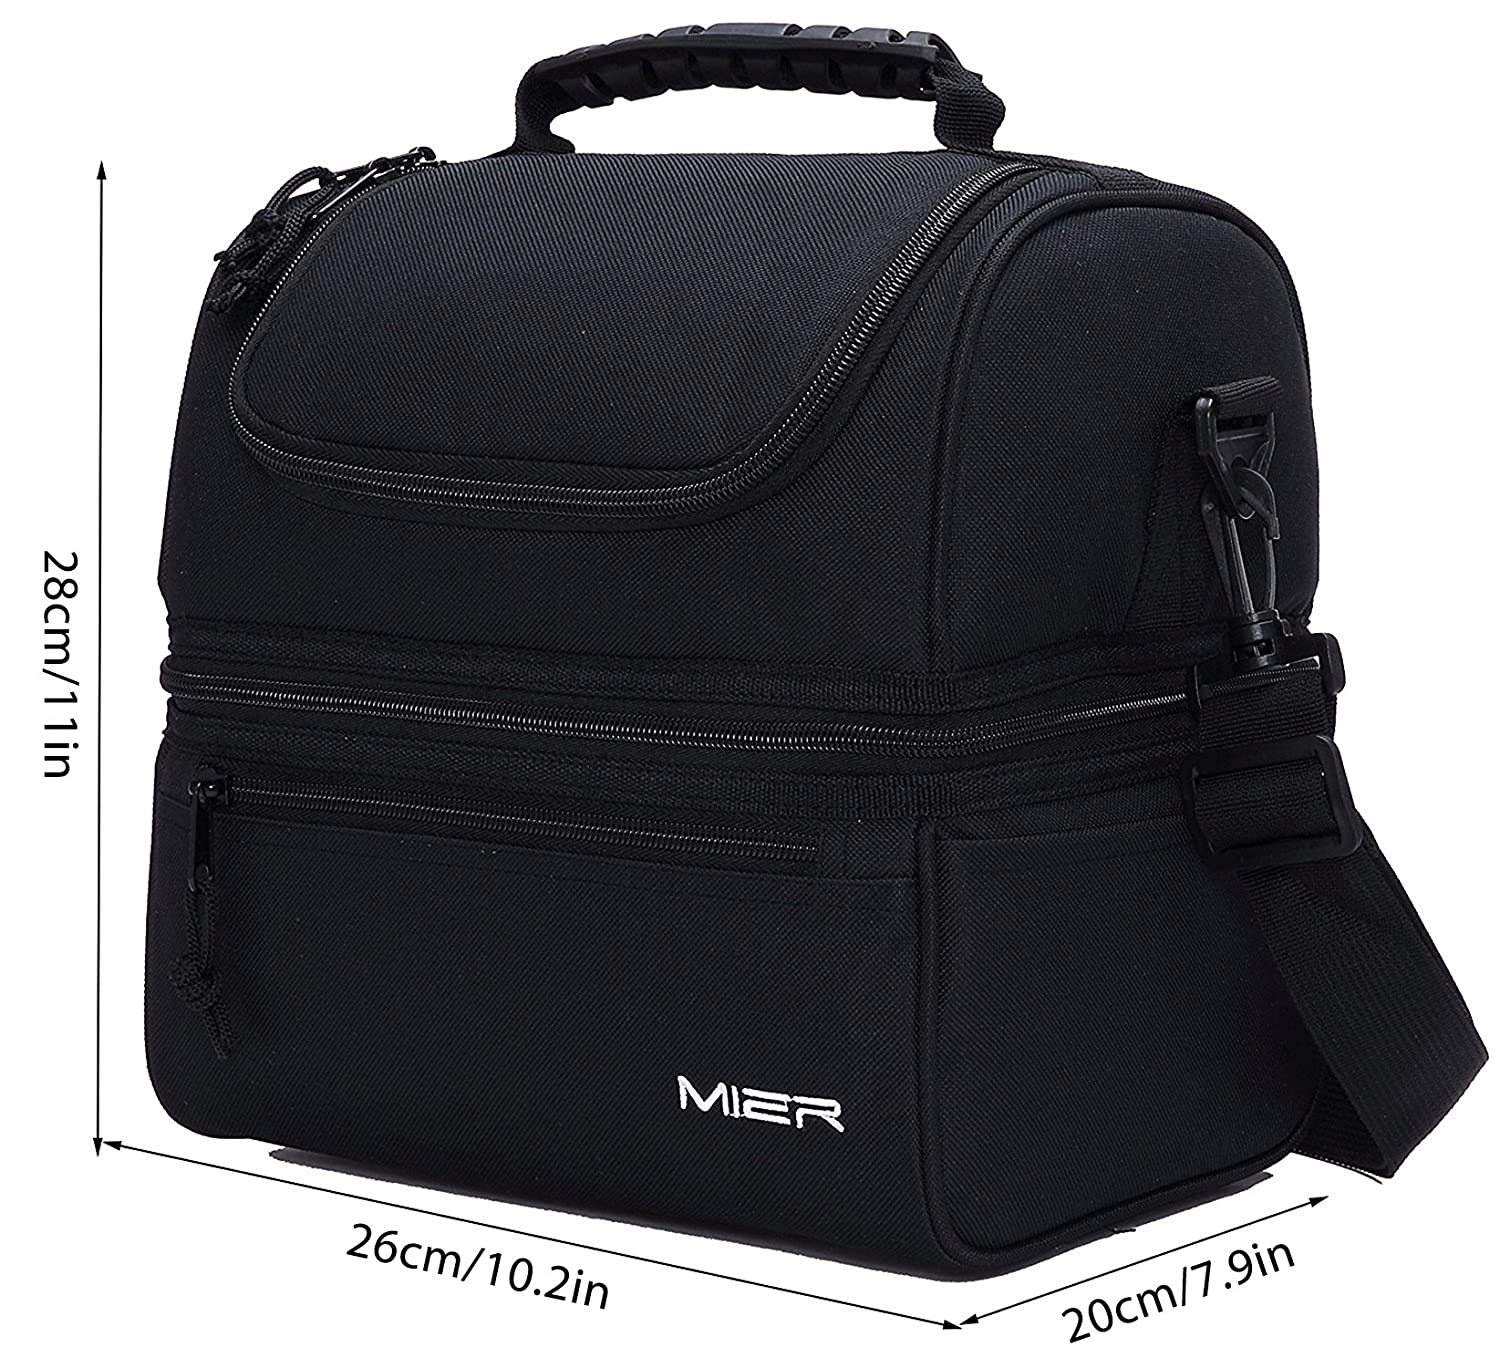 d525e9a1301 Amazon.com: MIER Adult Lunch Box Insulated Lunch Bag Large Cooler Tote Bag  for Men, Women, Double Deck Cooler(Black): Kitchen & Dining